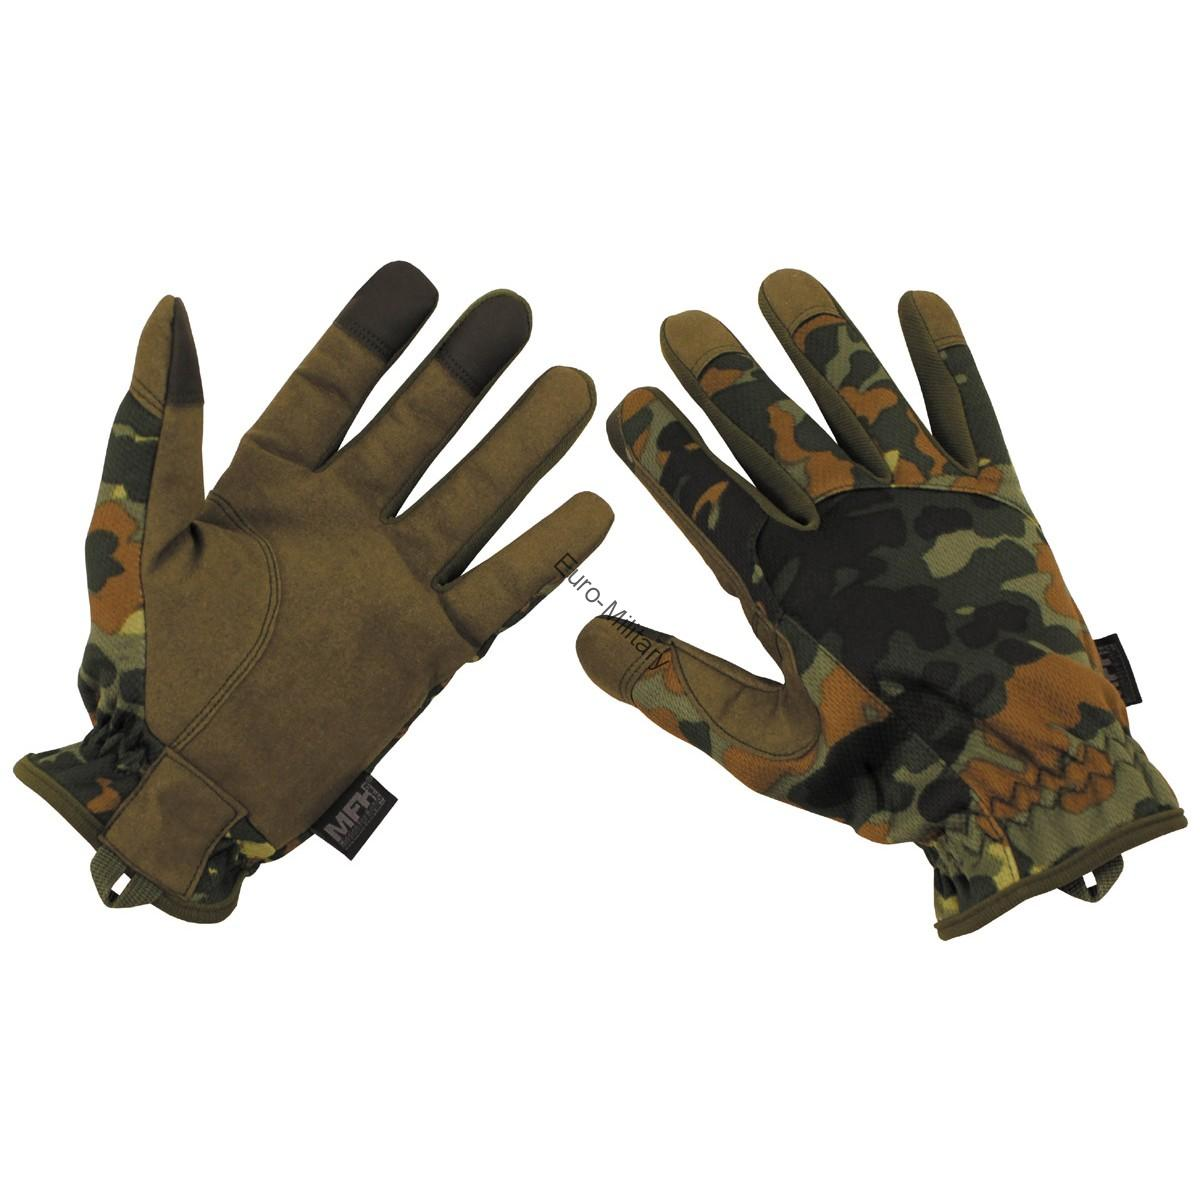 Professional Lightweight Tactical Military Gloves BW German Army Flectarn